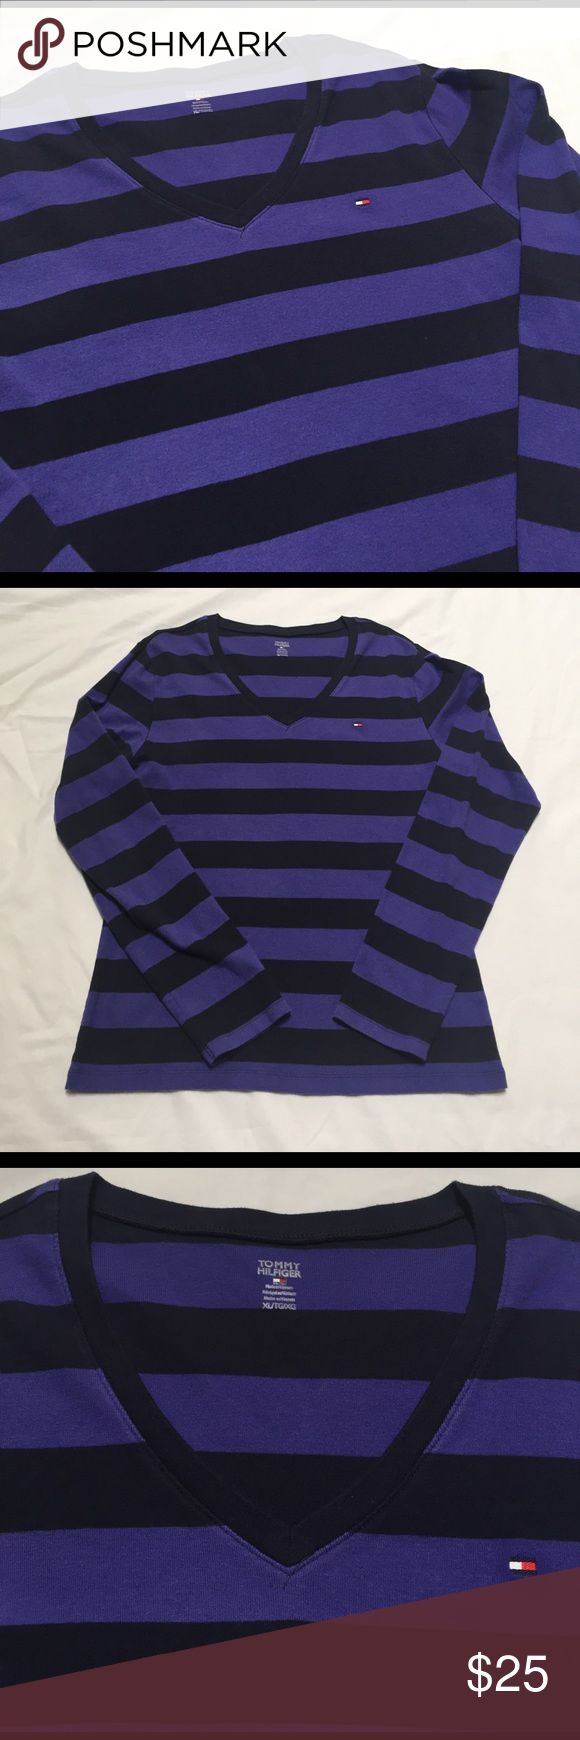 "Tommy Hilfiger knit sweater/tshirt Purple and navy striped long sleeve shirt. Nicer than a tshirt. Not as heavy as a sweater. Super soft. Excellent condition. 20"" at the chest. 25"" length from base of collar Tommy Hilfiger Tops Tees - Long Sleeve"